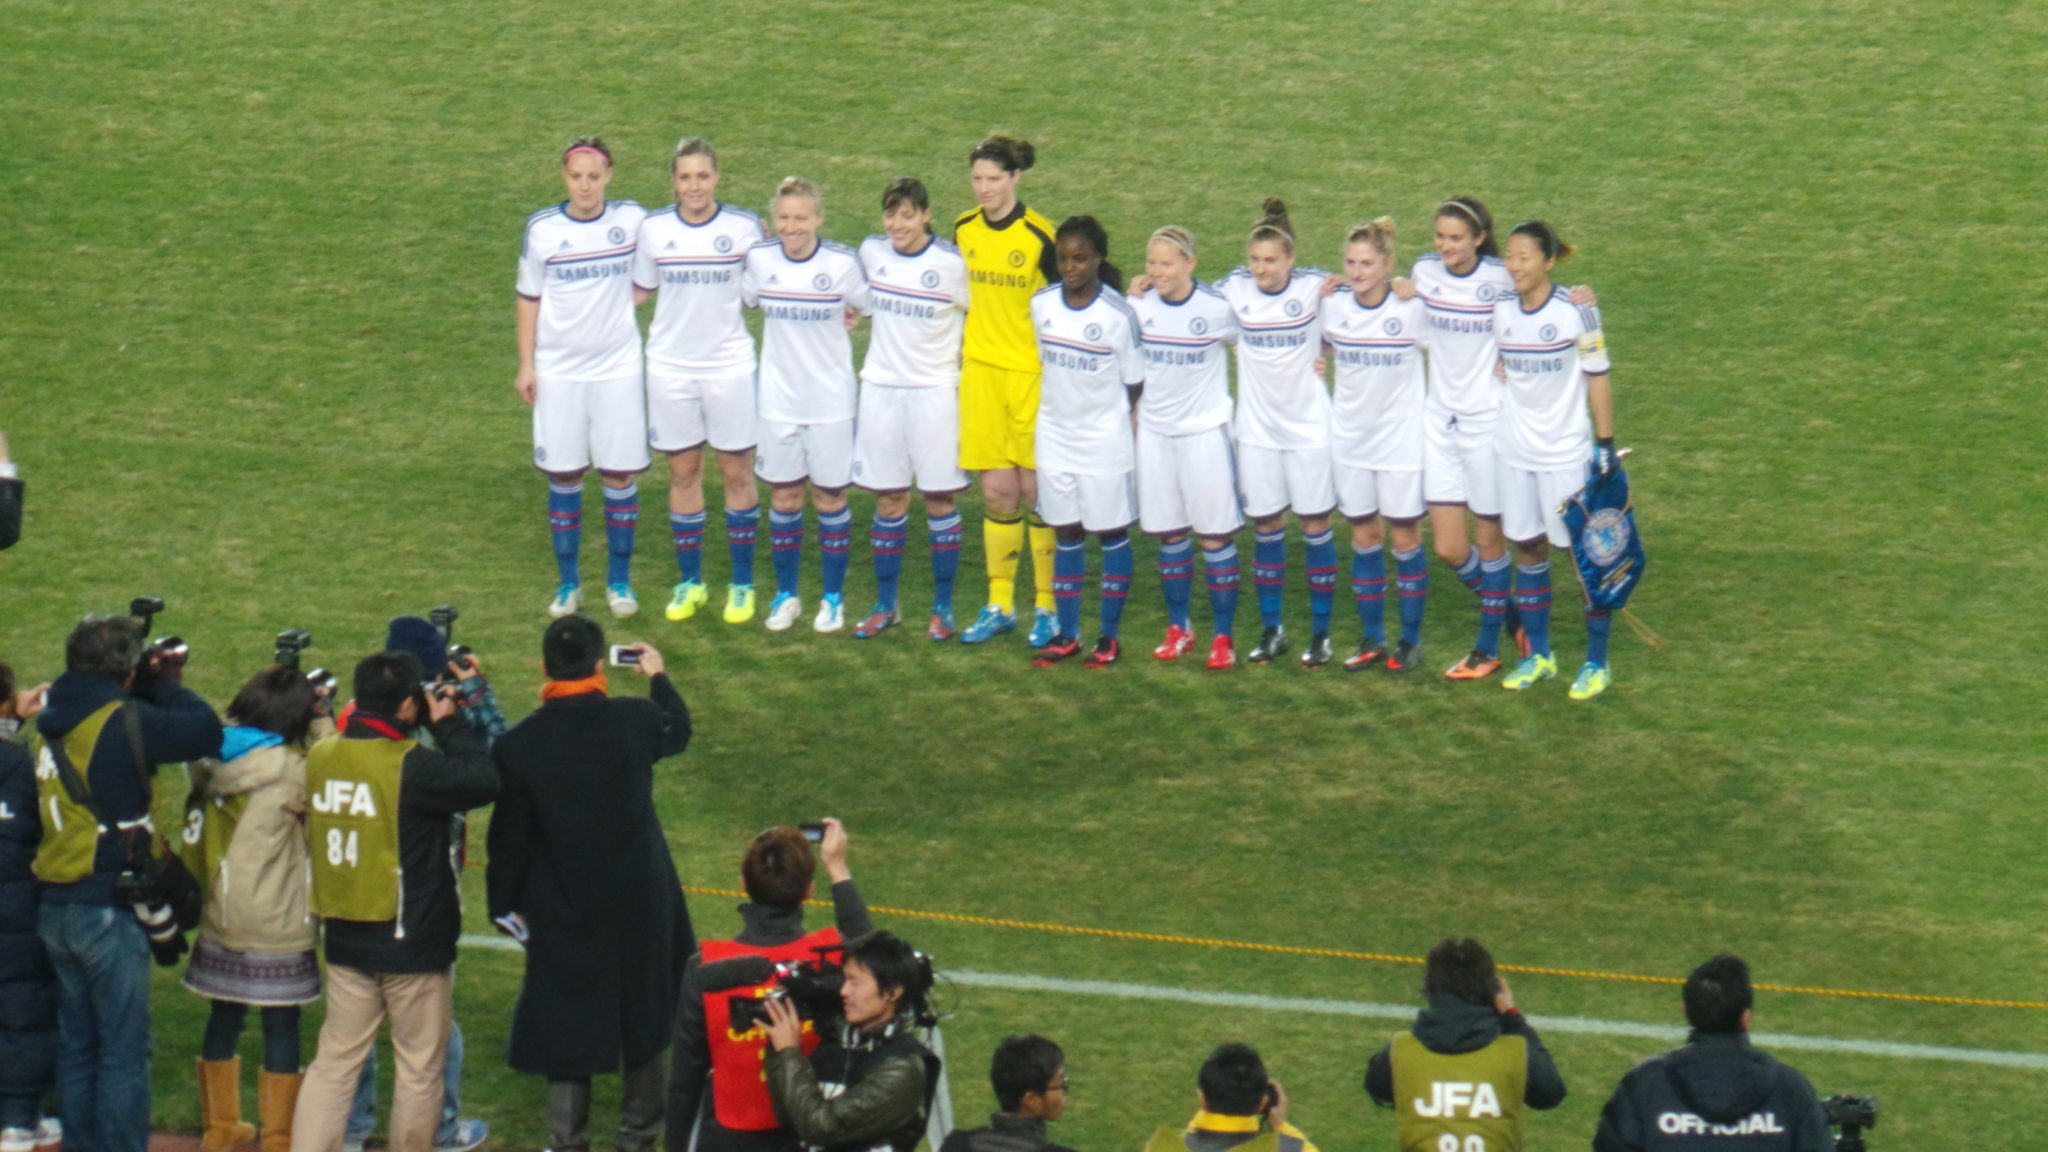 Chelsea Ladies are through to the Mobcast final after beating Sydney FC on Wednesday. (Photo Courtesy Chelsea Ladies)